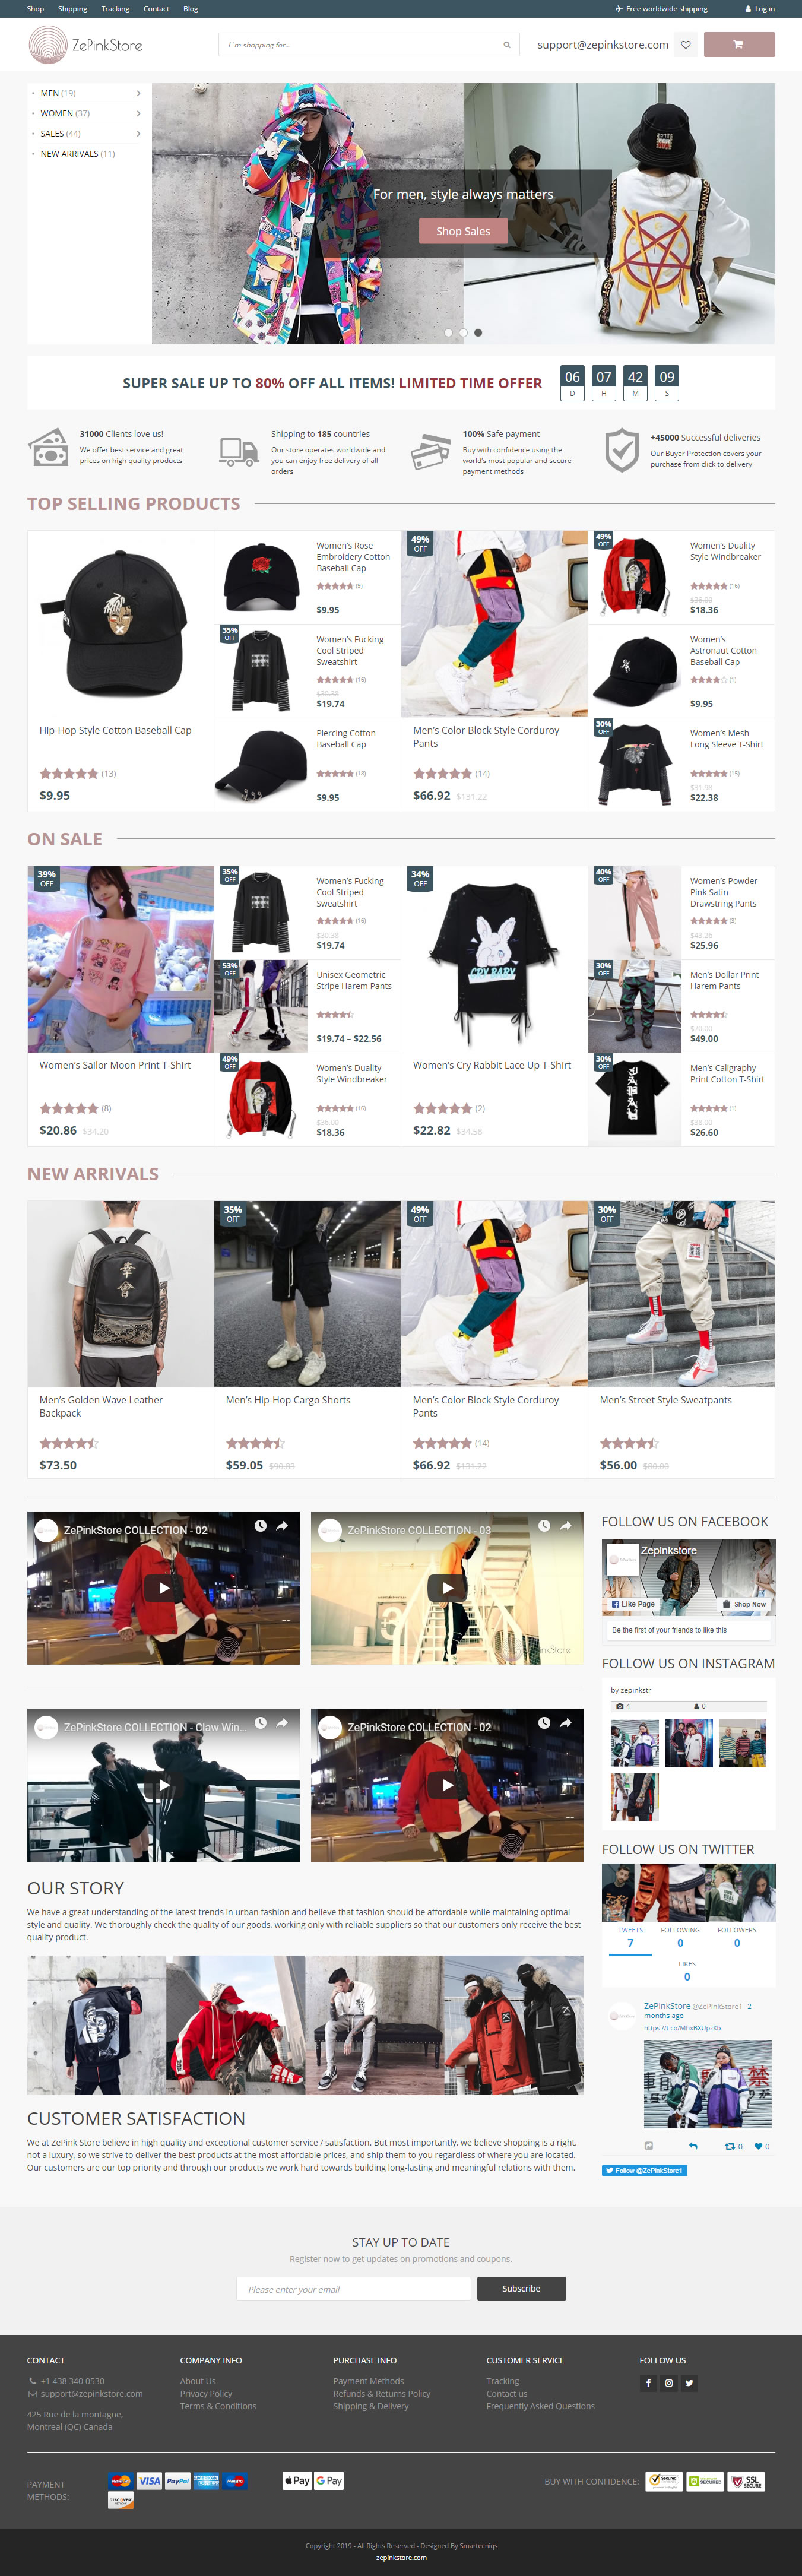 Zepink Store Website Home Page Full View